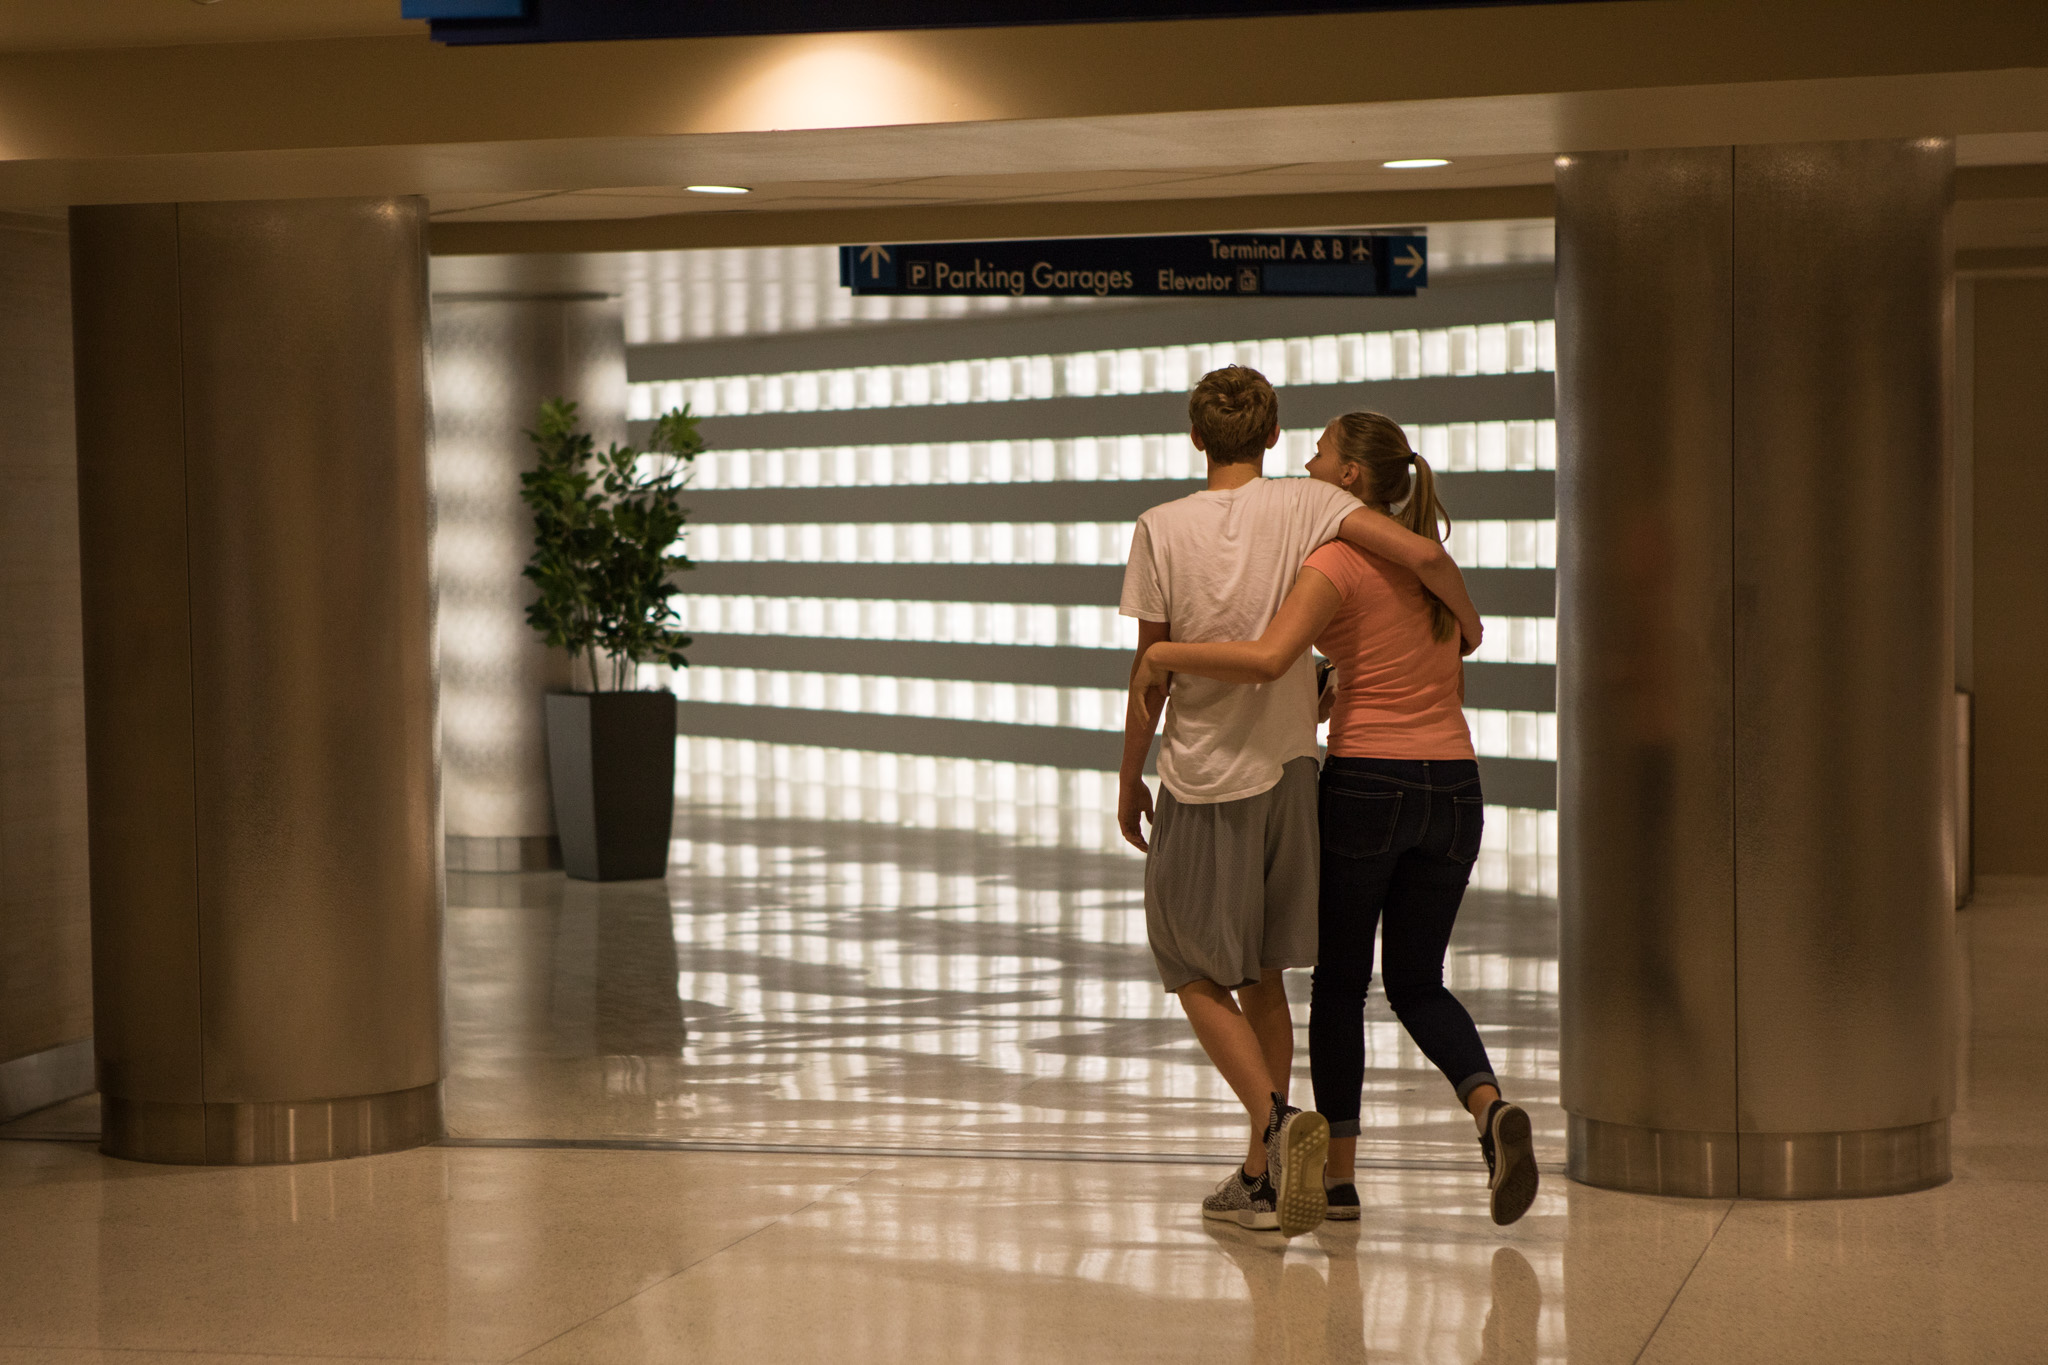 A couple enters the walkway leading from the airport terminal to the short-term parking garage at the San Antonio International Airport.